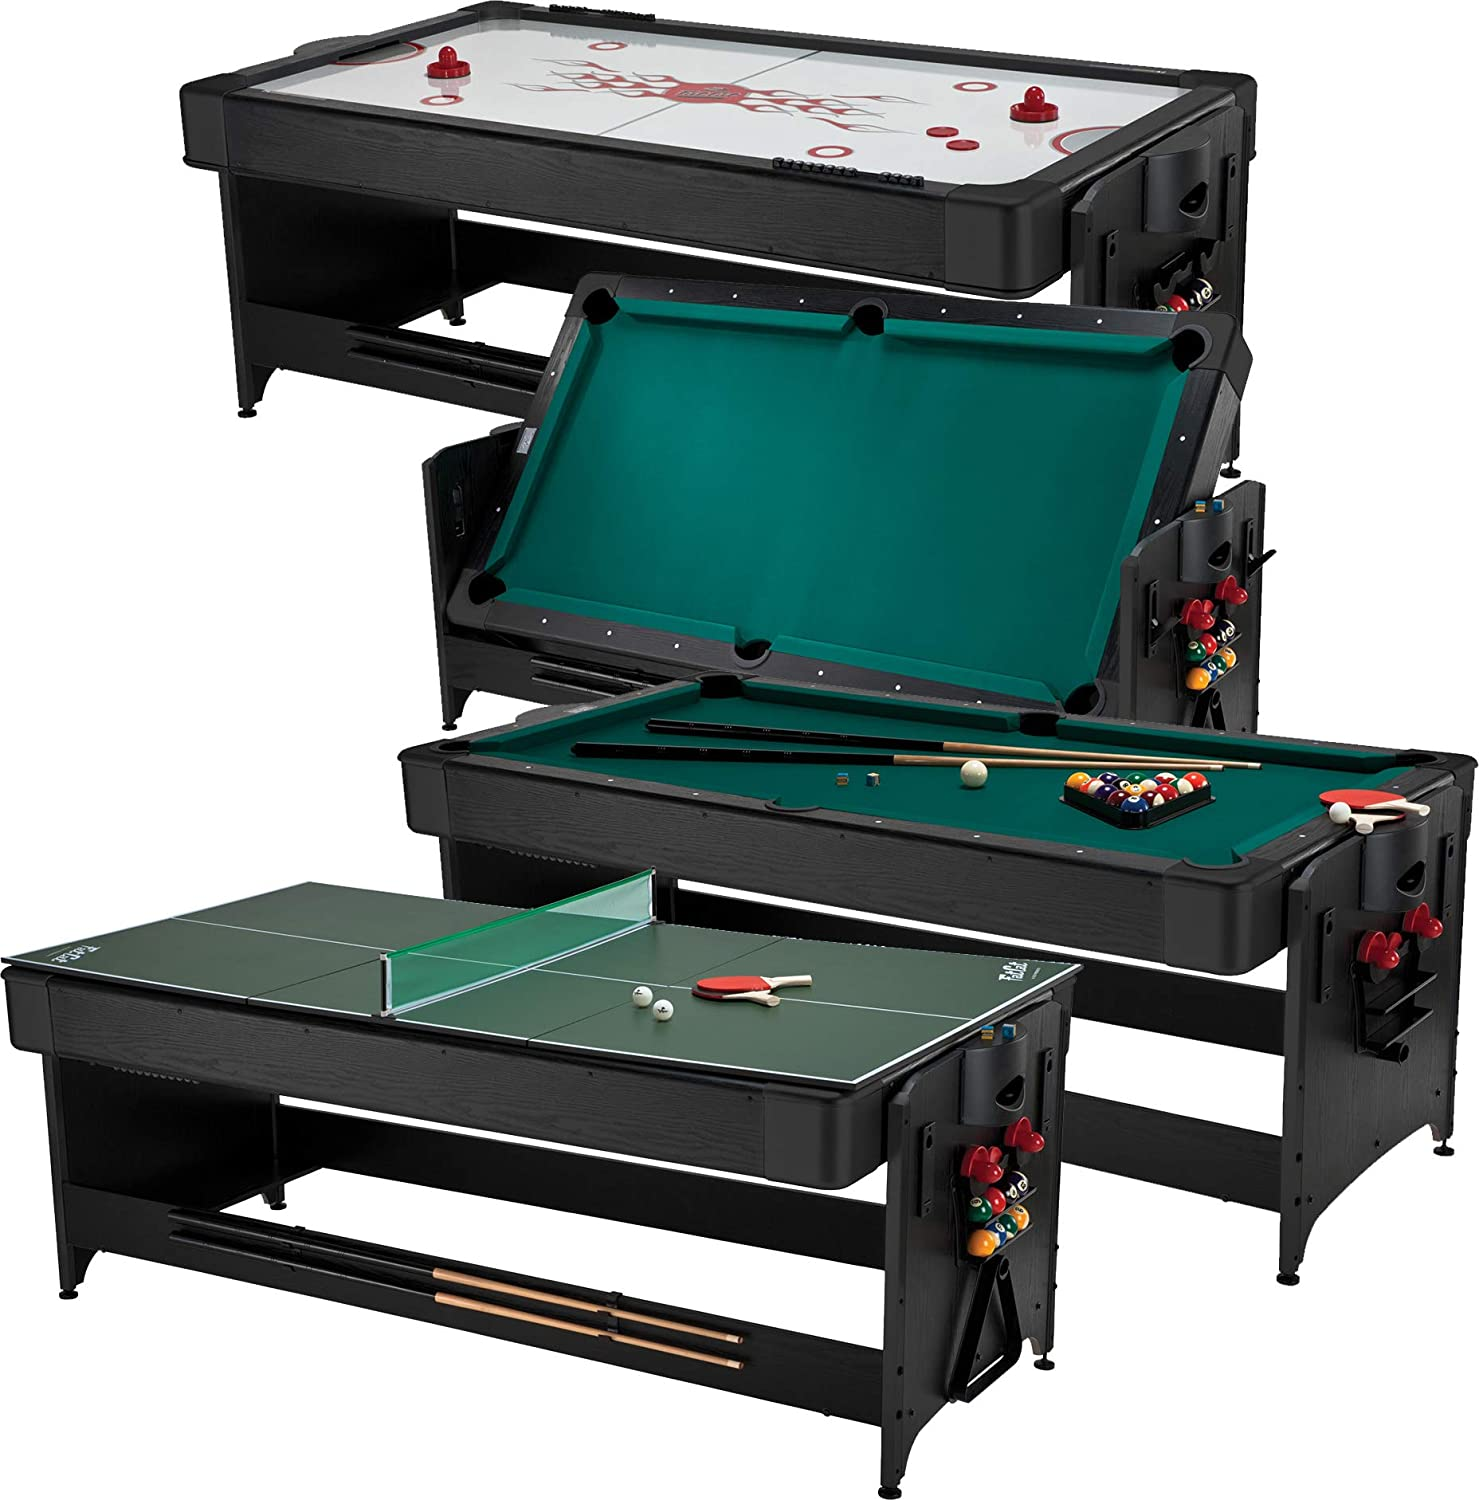 GSE Games & Fat Cat Original 3-in-1 combo table